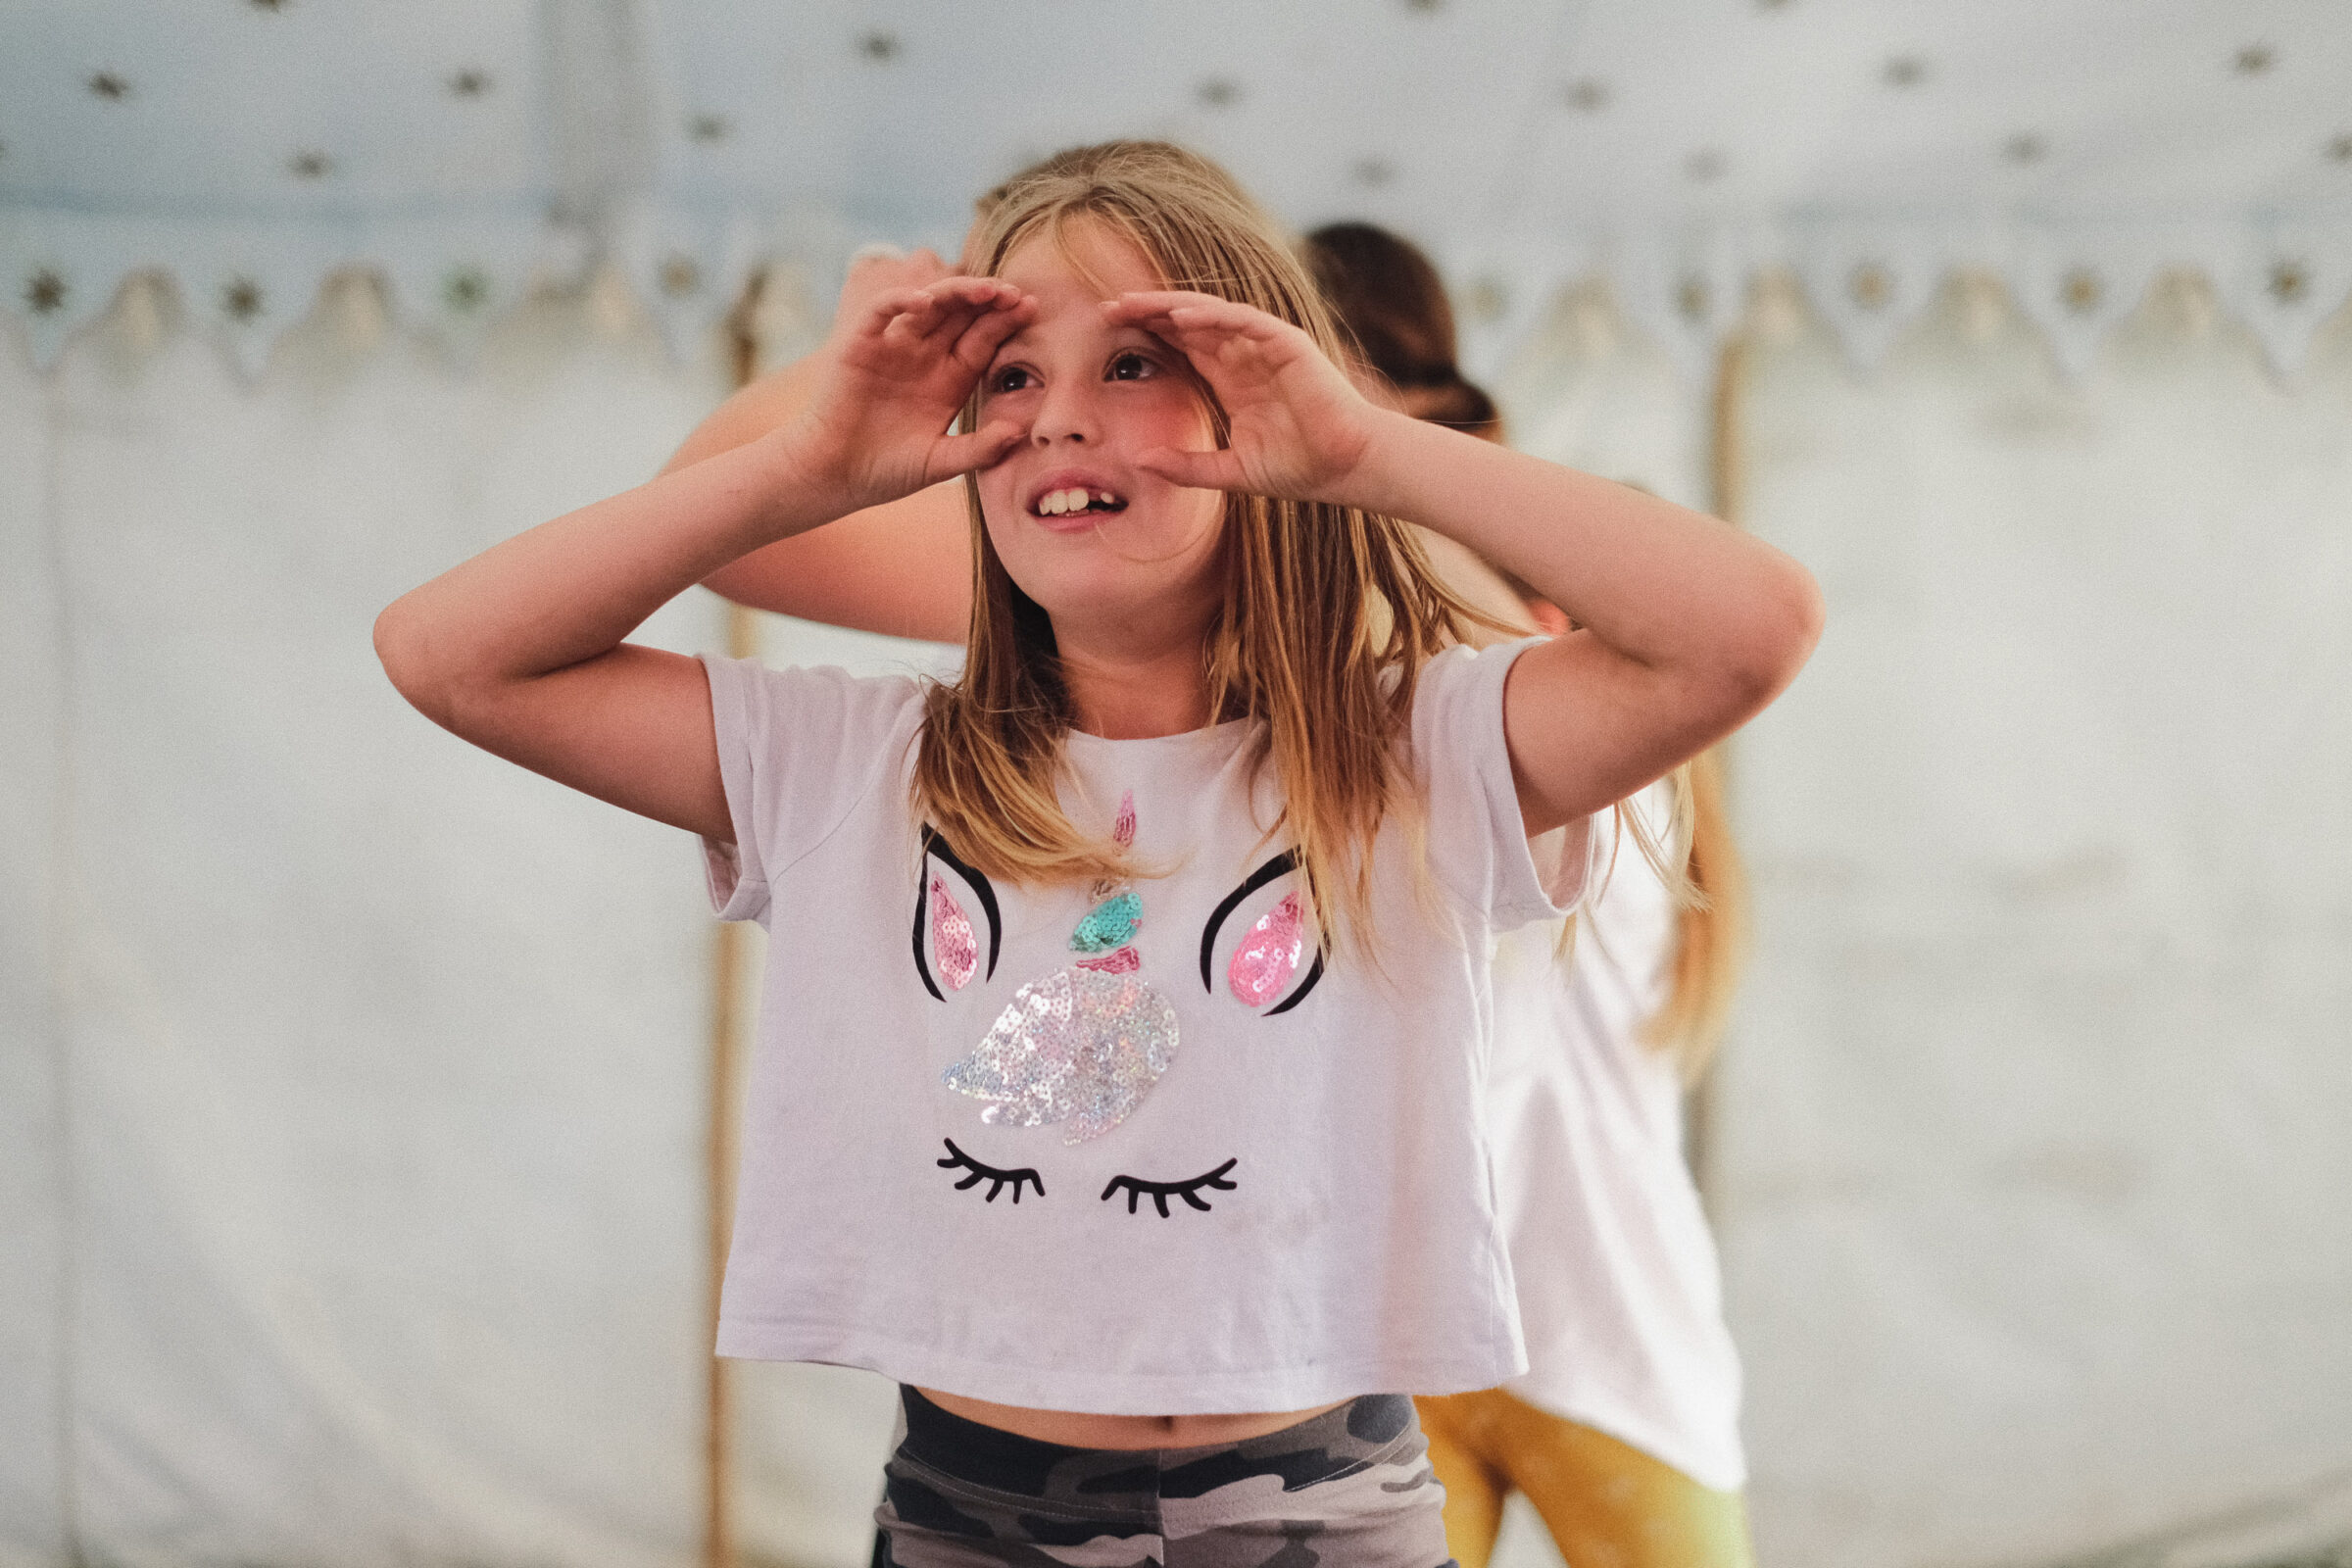 A young person is dancing with her hands held up to her face to create an imaginary pair of binoculars